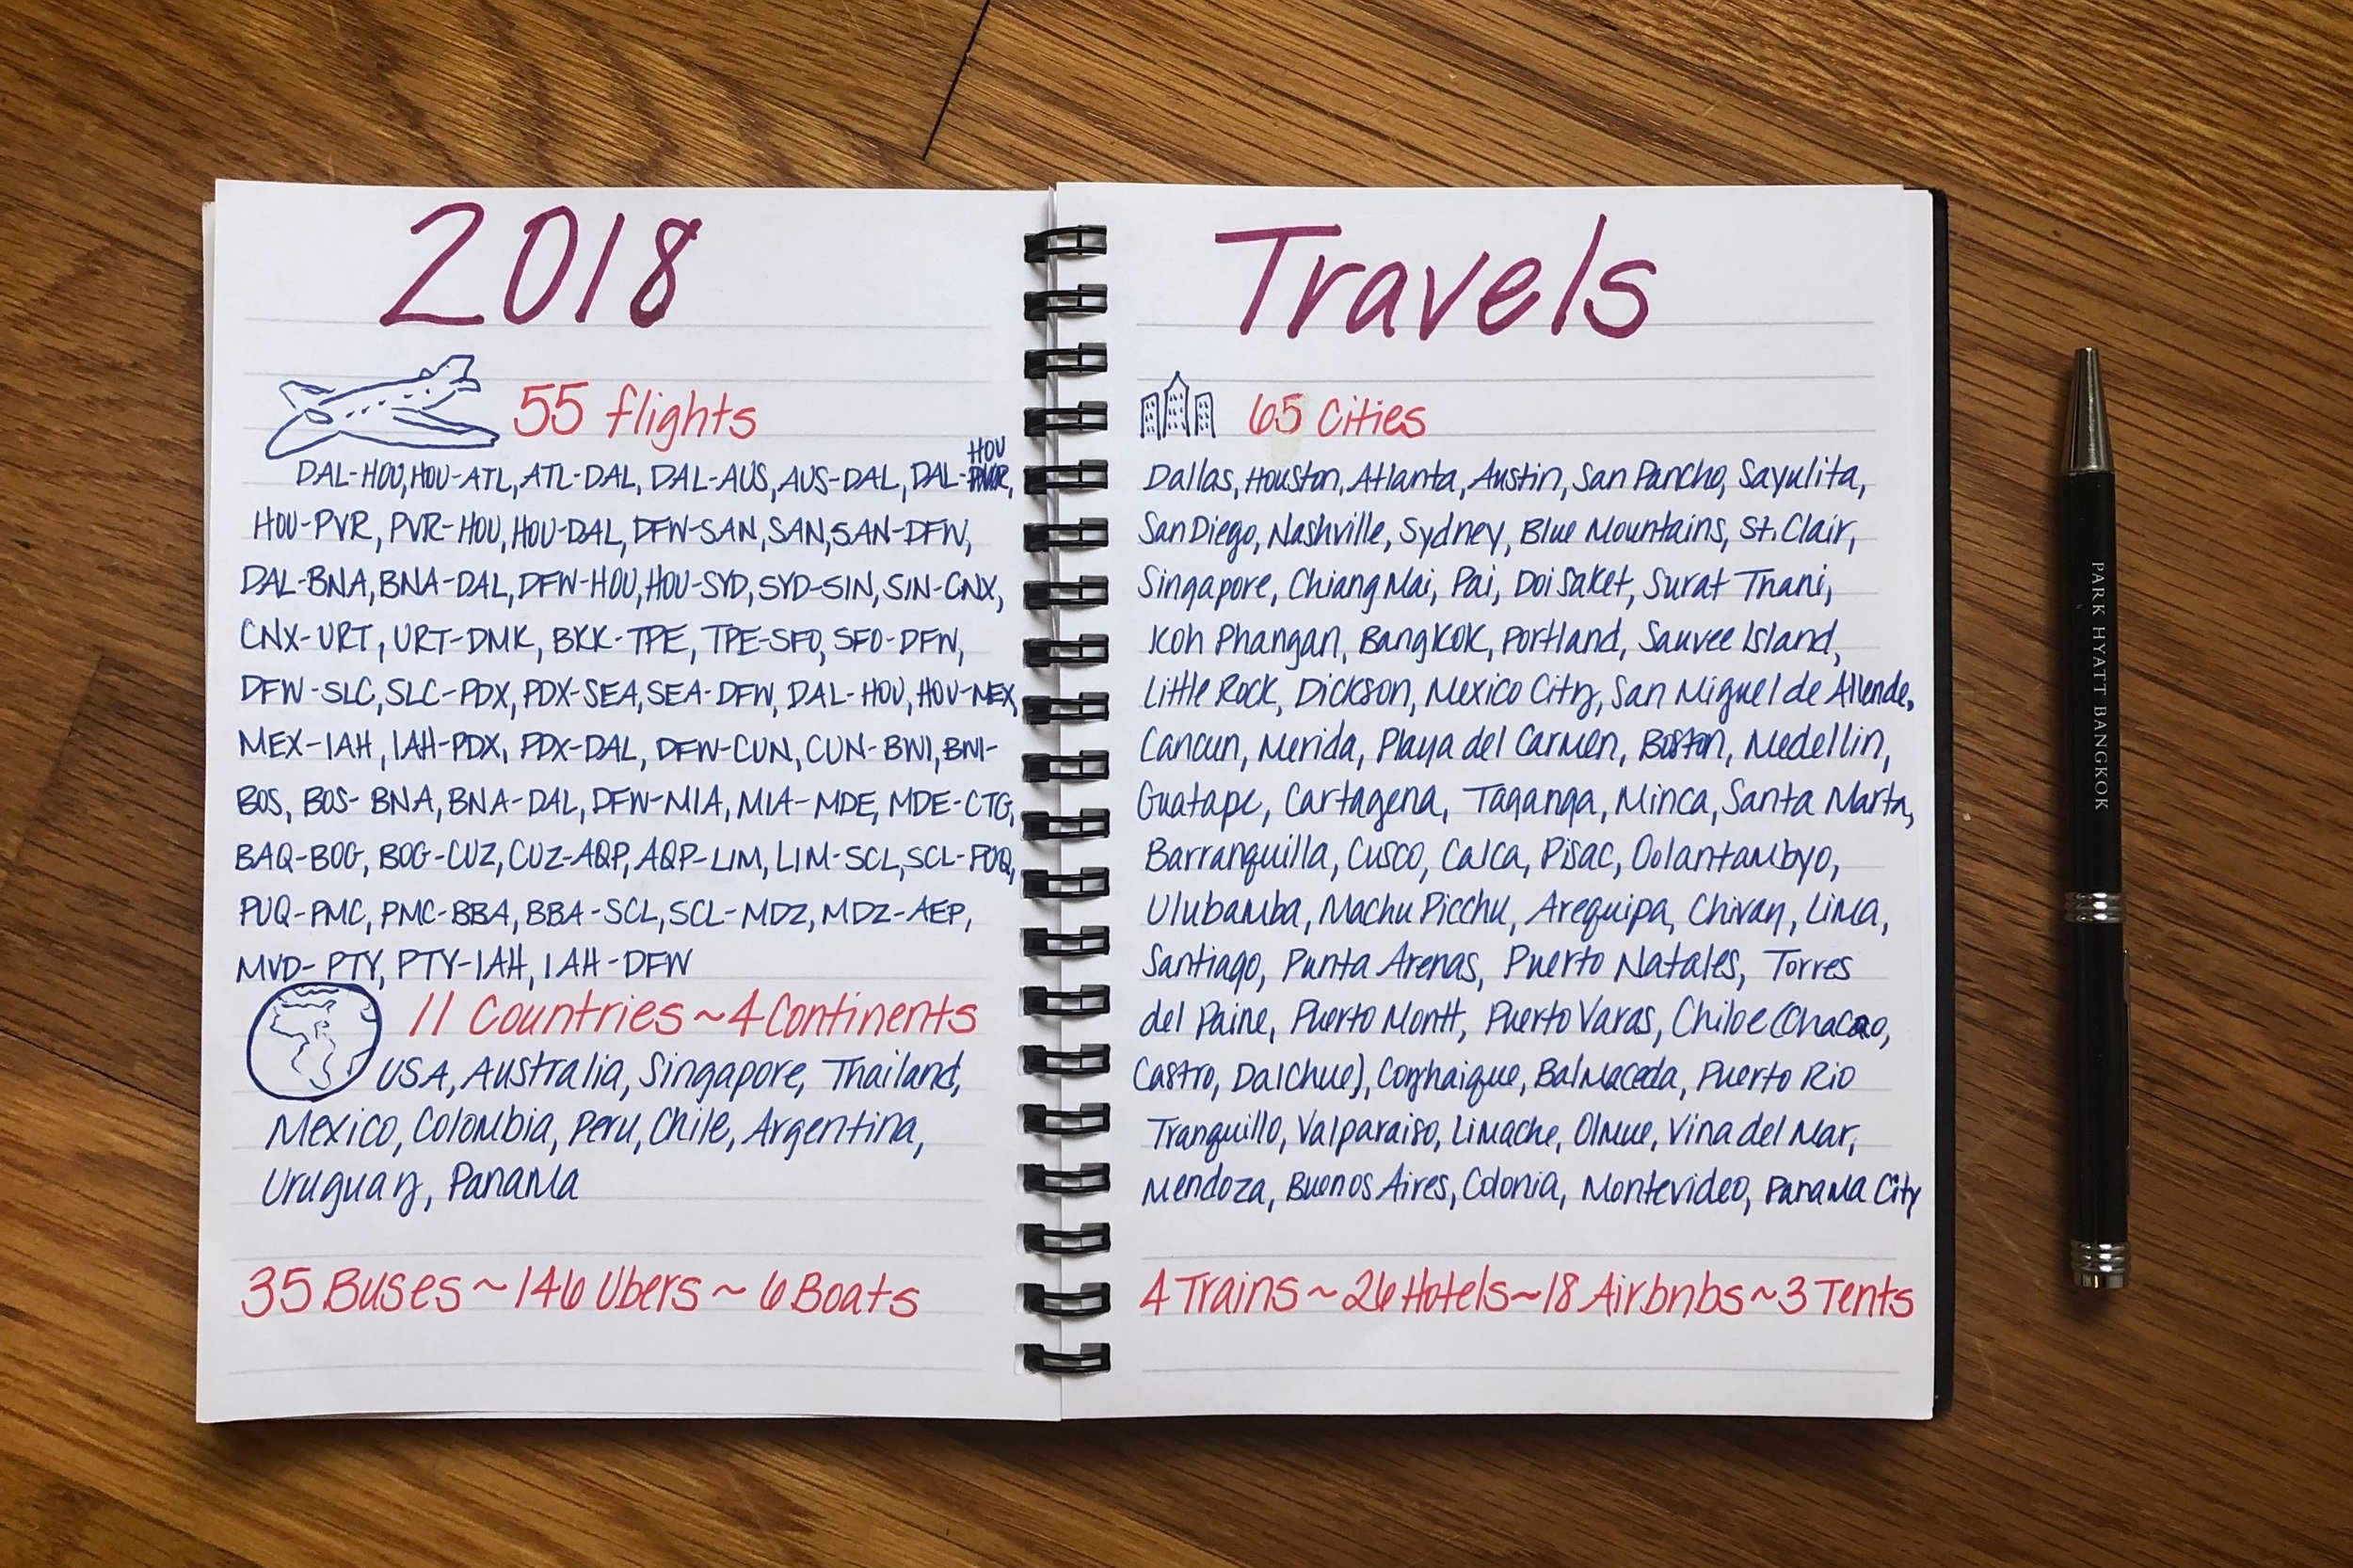 summary of my solo travel adventures for 2018